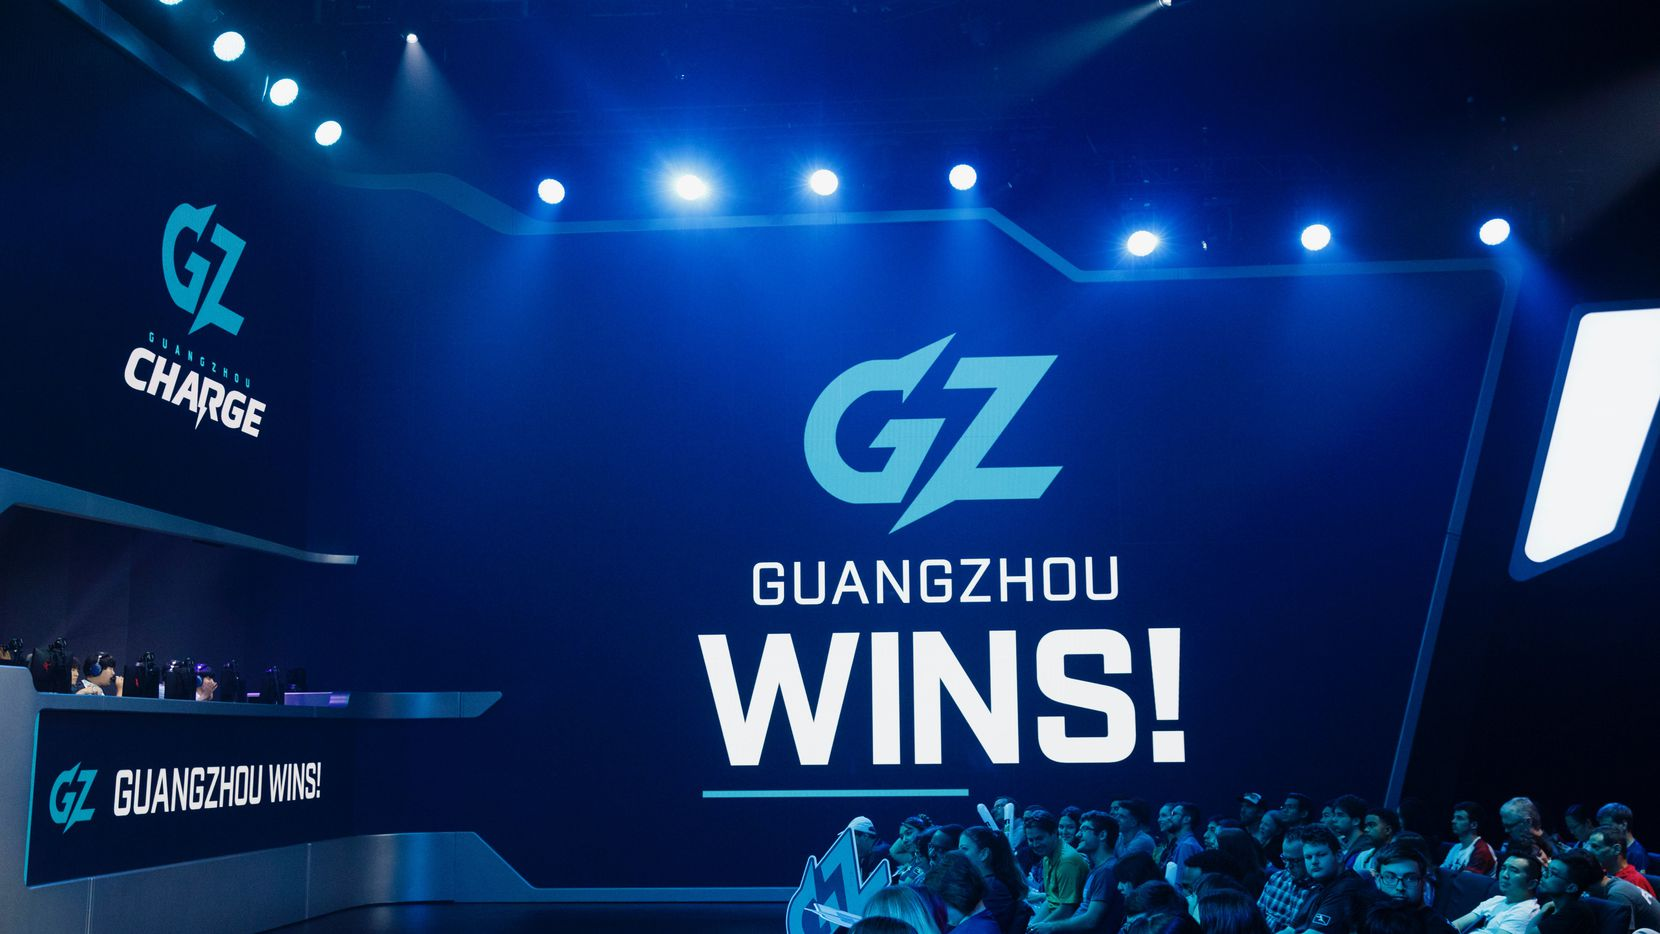 Guangzhou Charge wins a match in the first half during the Overwatch League match between the Dallas Fuel and Guangzhou Charge on Sunday, August 18, 2019 at Blizzard Arena in Burbank, CA. (Photo by Patrick T. Fallon/Special Contributor to The Dallas Morning News)